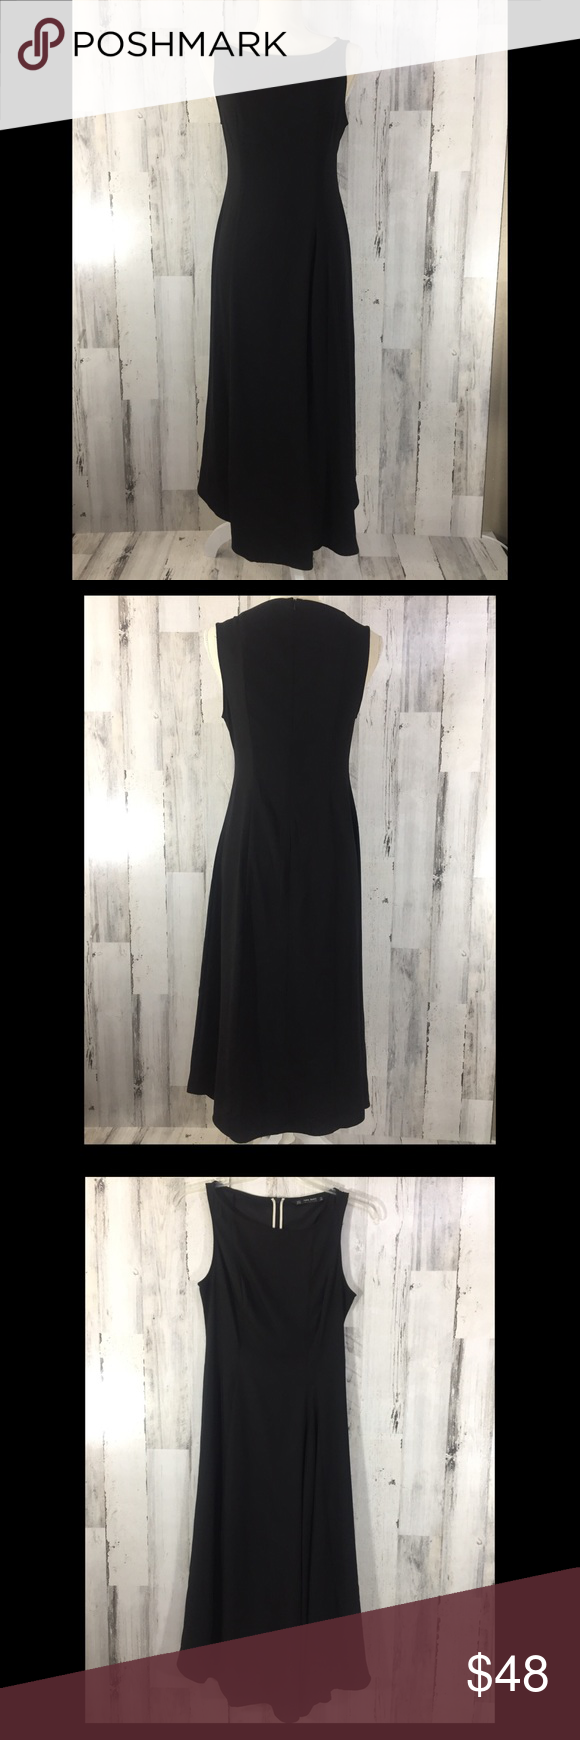 Zara basic black dress size m zara dresses long black and hemline